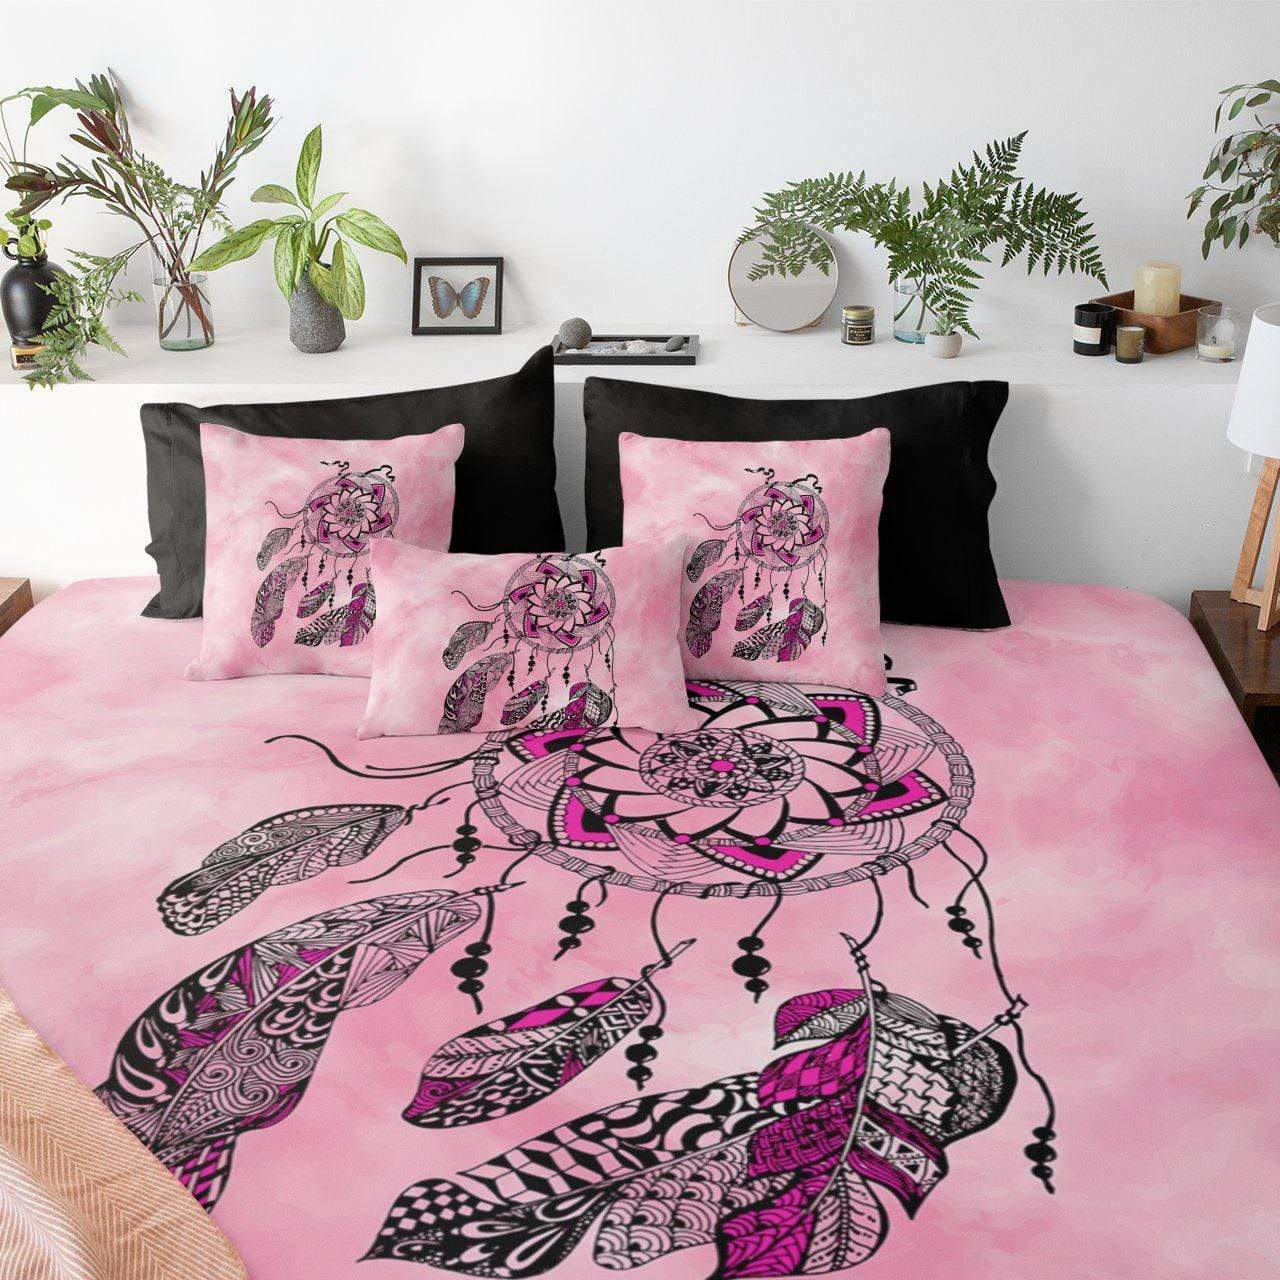 Namaste Dreamcatcher Pink Quilt Cover Set-Namaste Dreamcatcher Pink-Little Squiffy